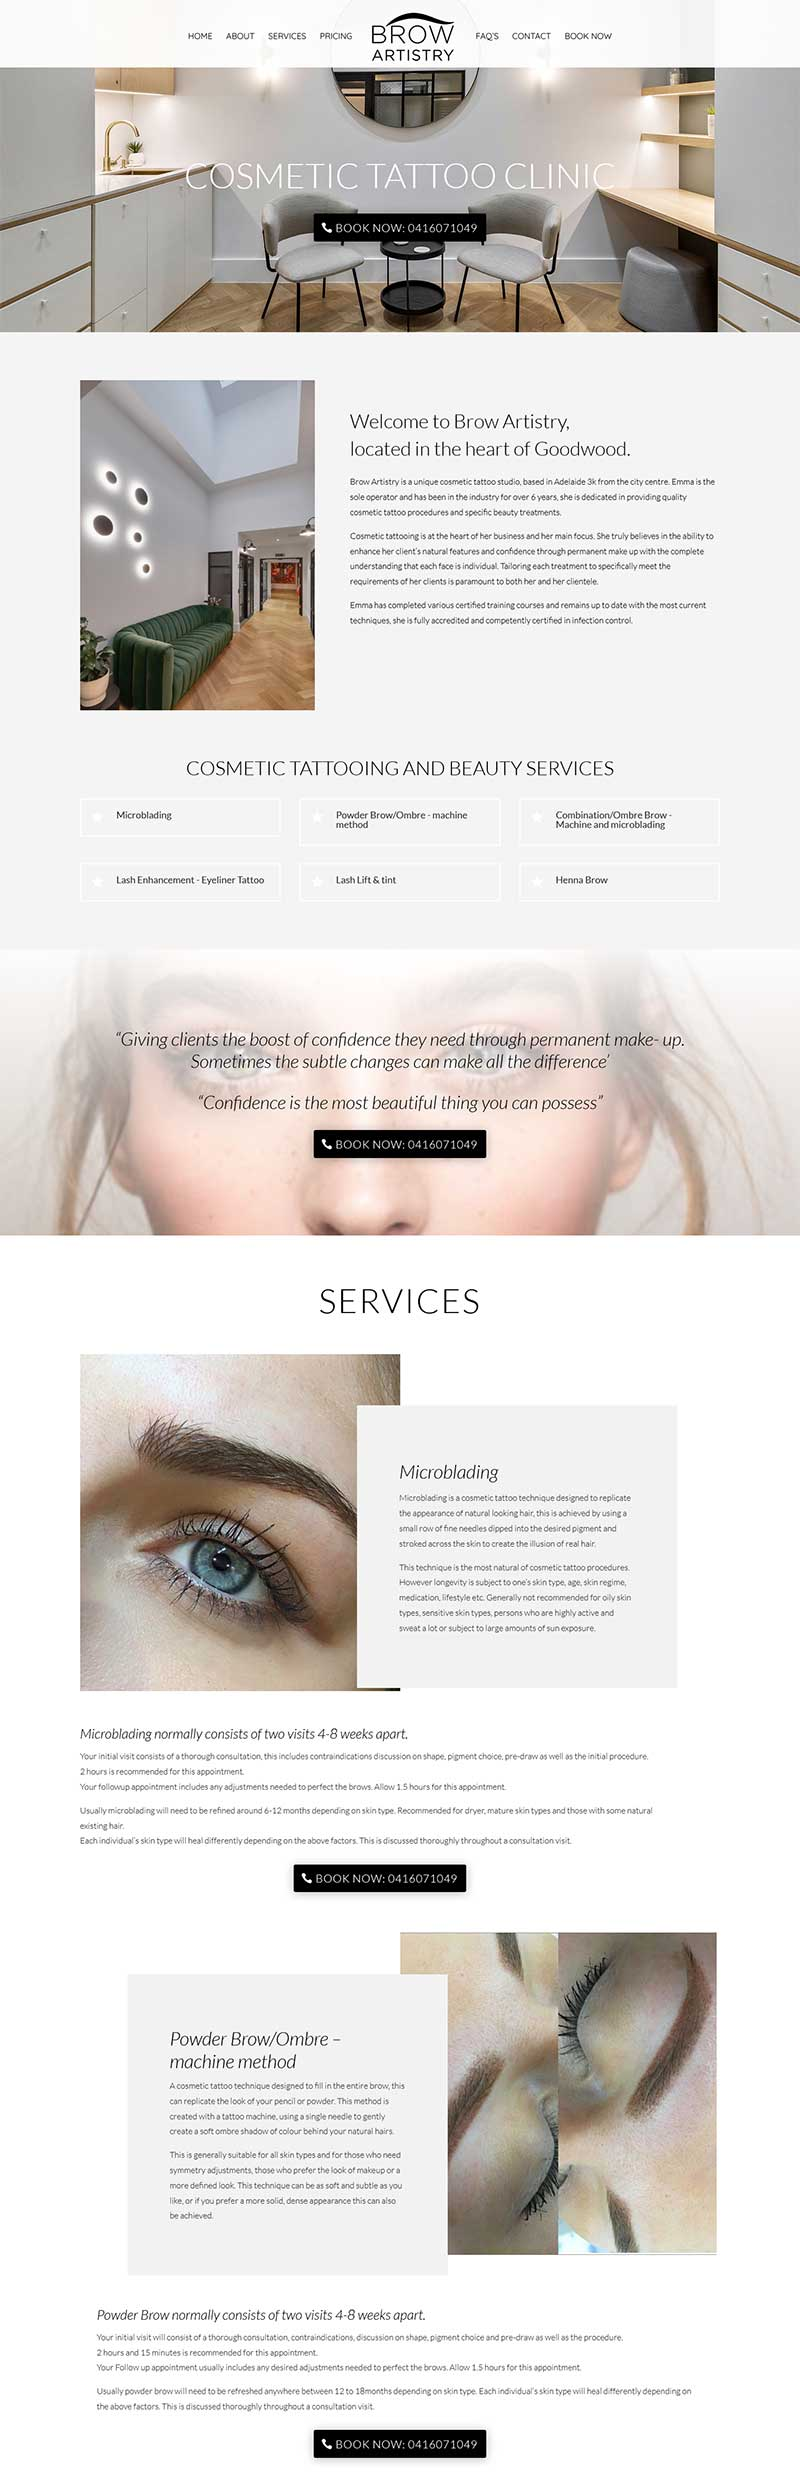 website desing for Cosmetic Tattoo Clinic Adelaide